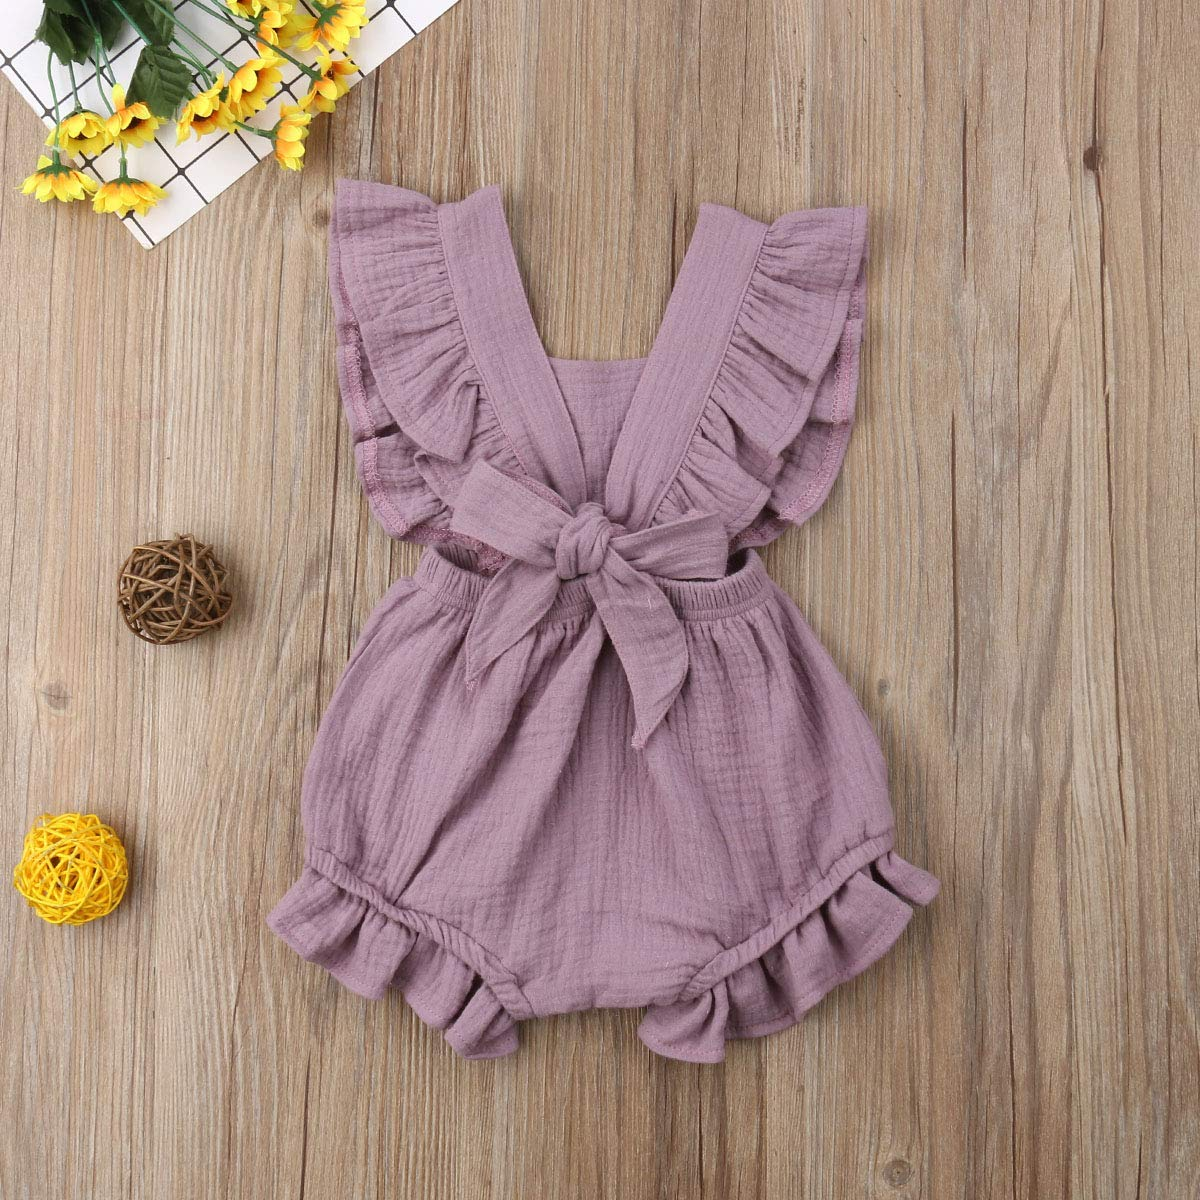 C/&M Wodro Infant Baby Girl Bodysuit Sleeveless Ruffles Romper Sunsuit Outfit Princess Clothes